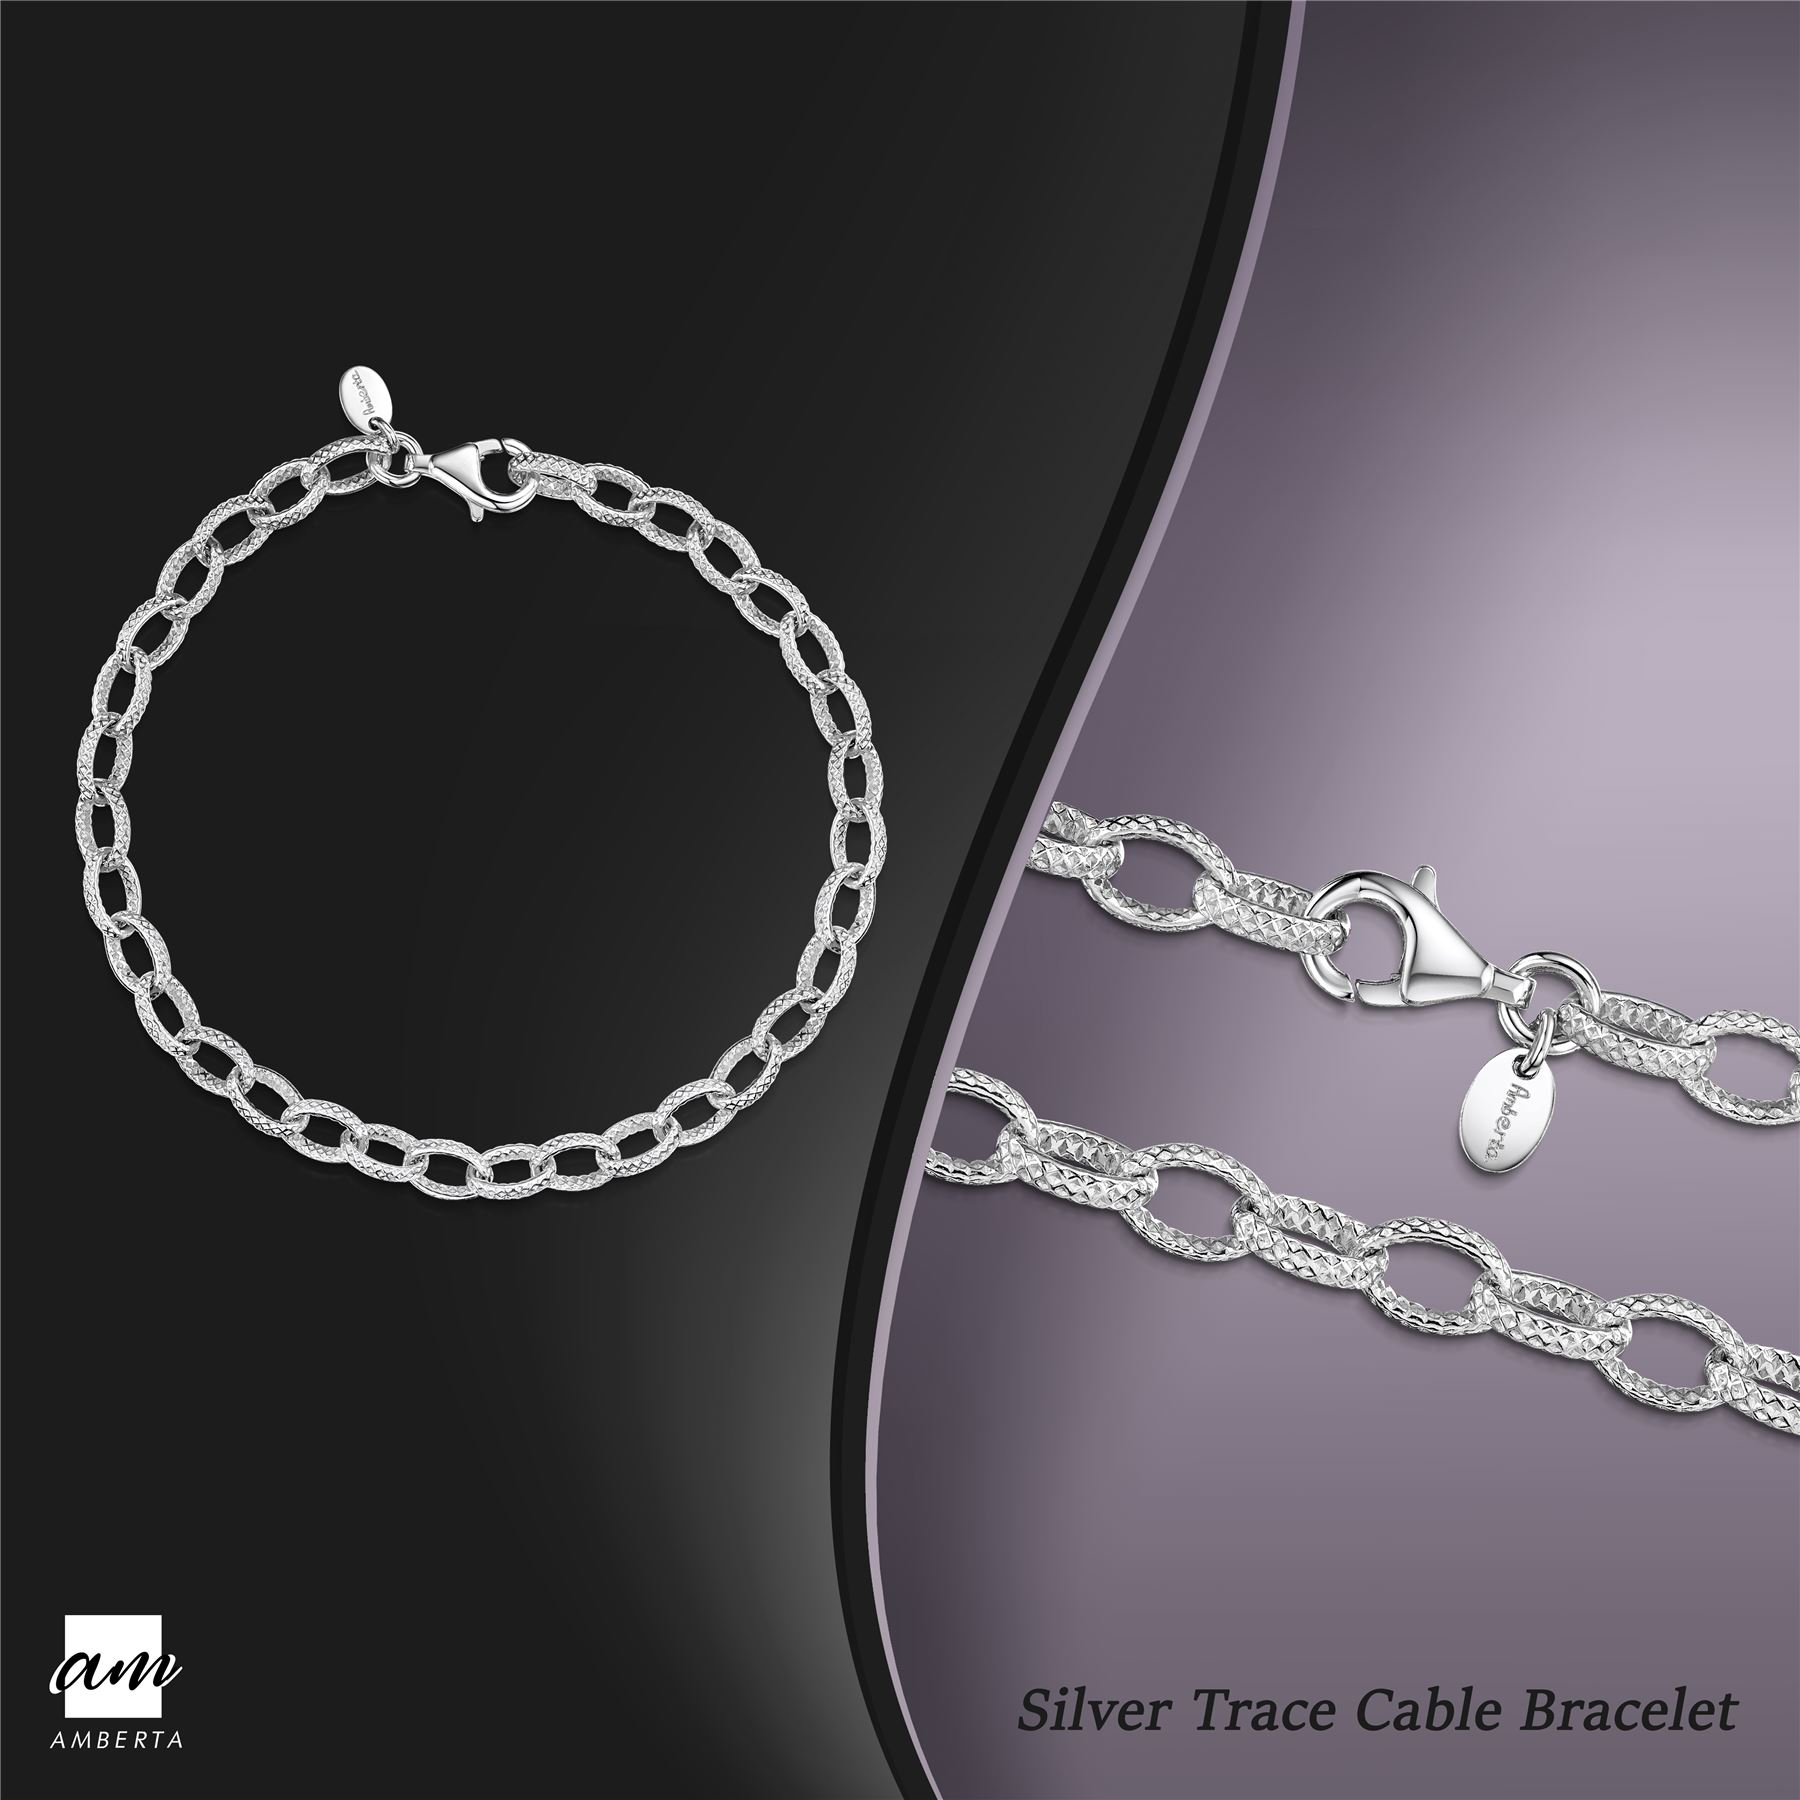 Amberta-Genuine-Real-925-Sterling-Silver-Chain-Bracelet-for-Women-from-Italy miniature 32